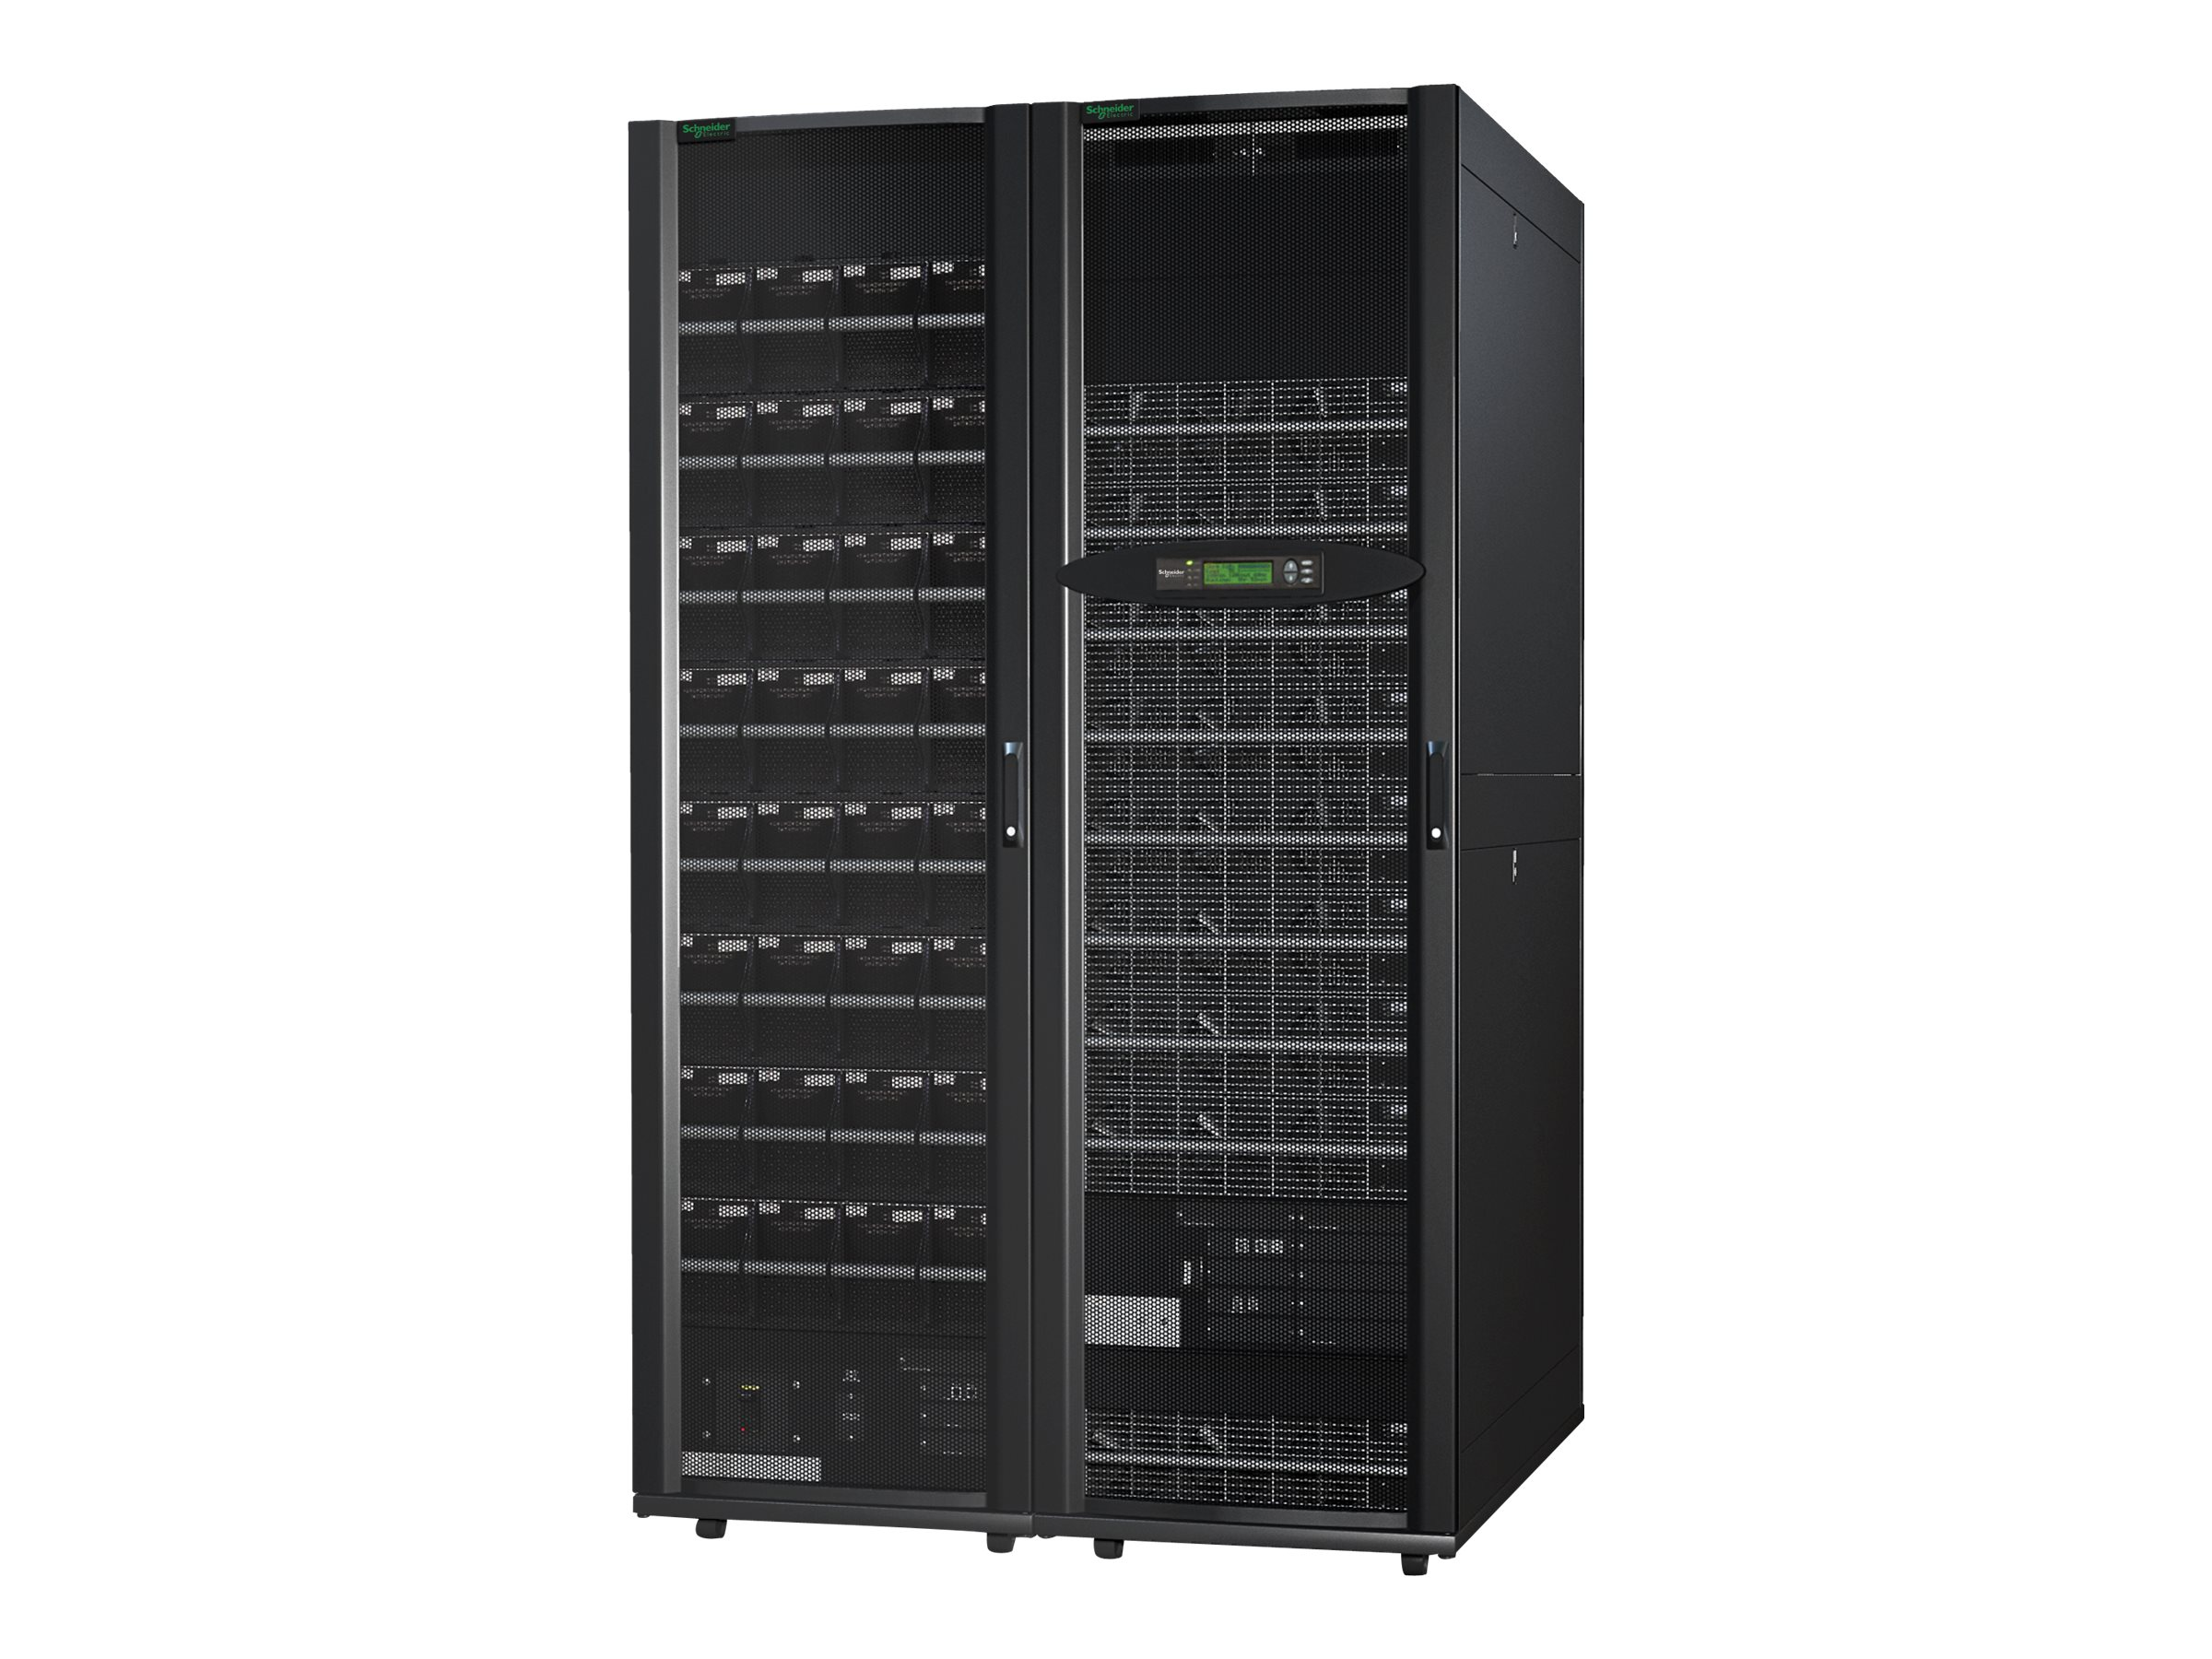 APC Symmetra PX 80kW Scalable to 100kW, 208V with Startup, SY80K100F, 12580698, Battery Backup/UPS